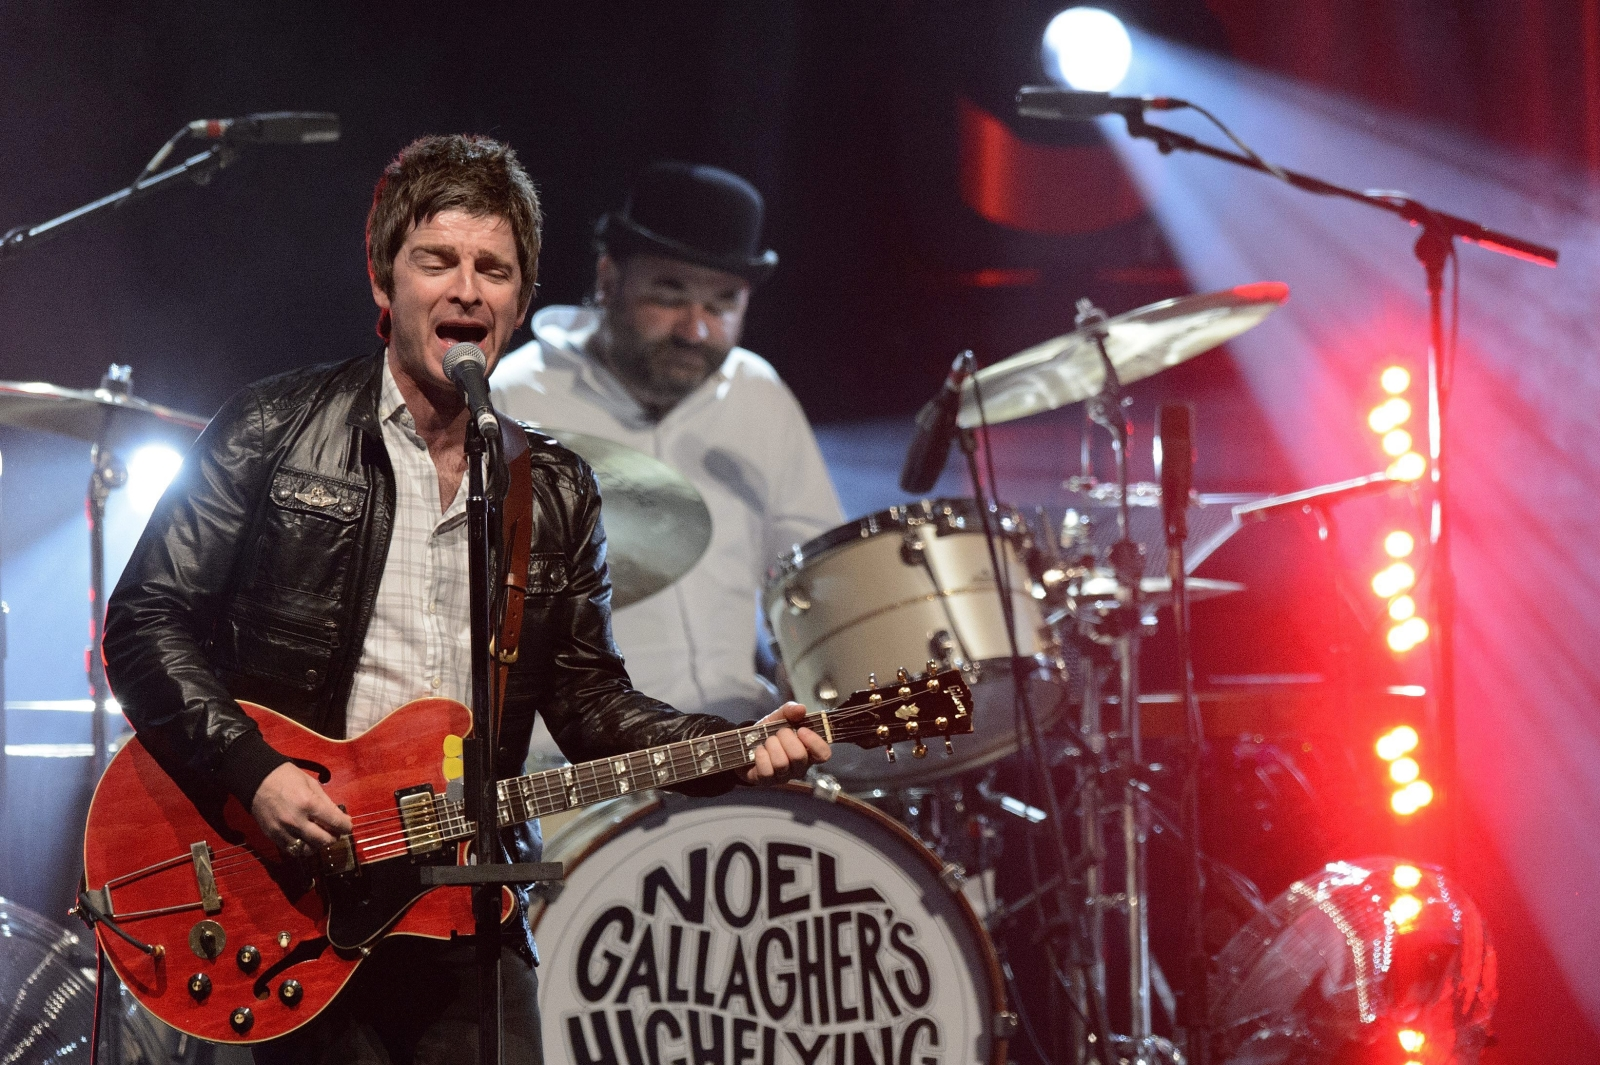 Noel Gallagher na 46th Montreux Jazz Festival